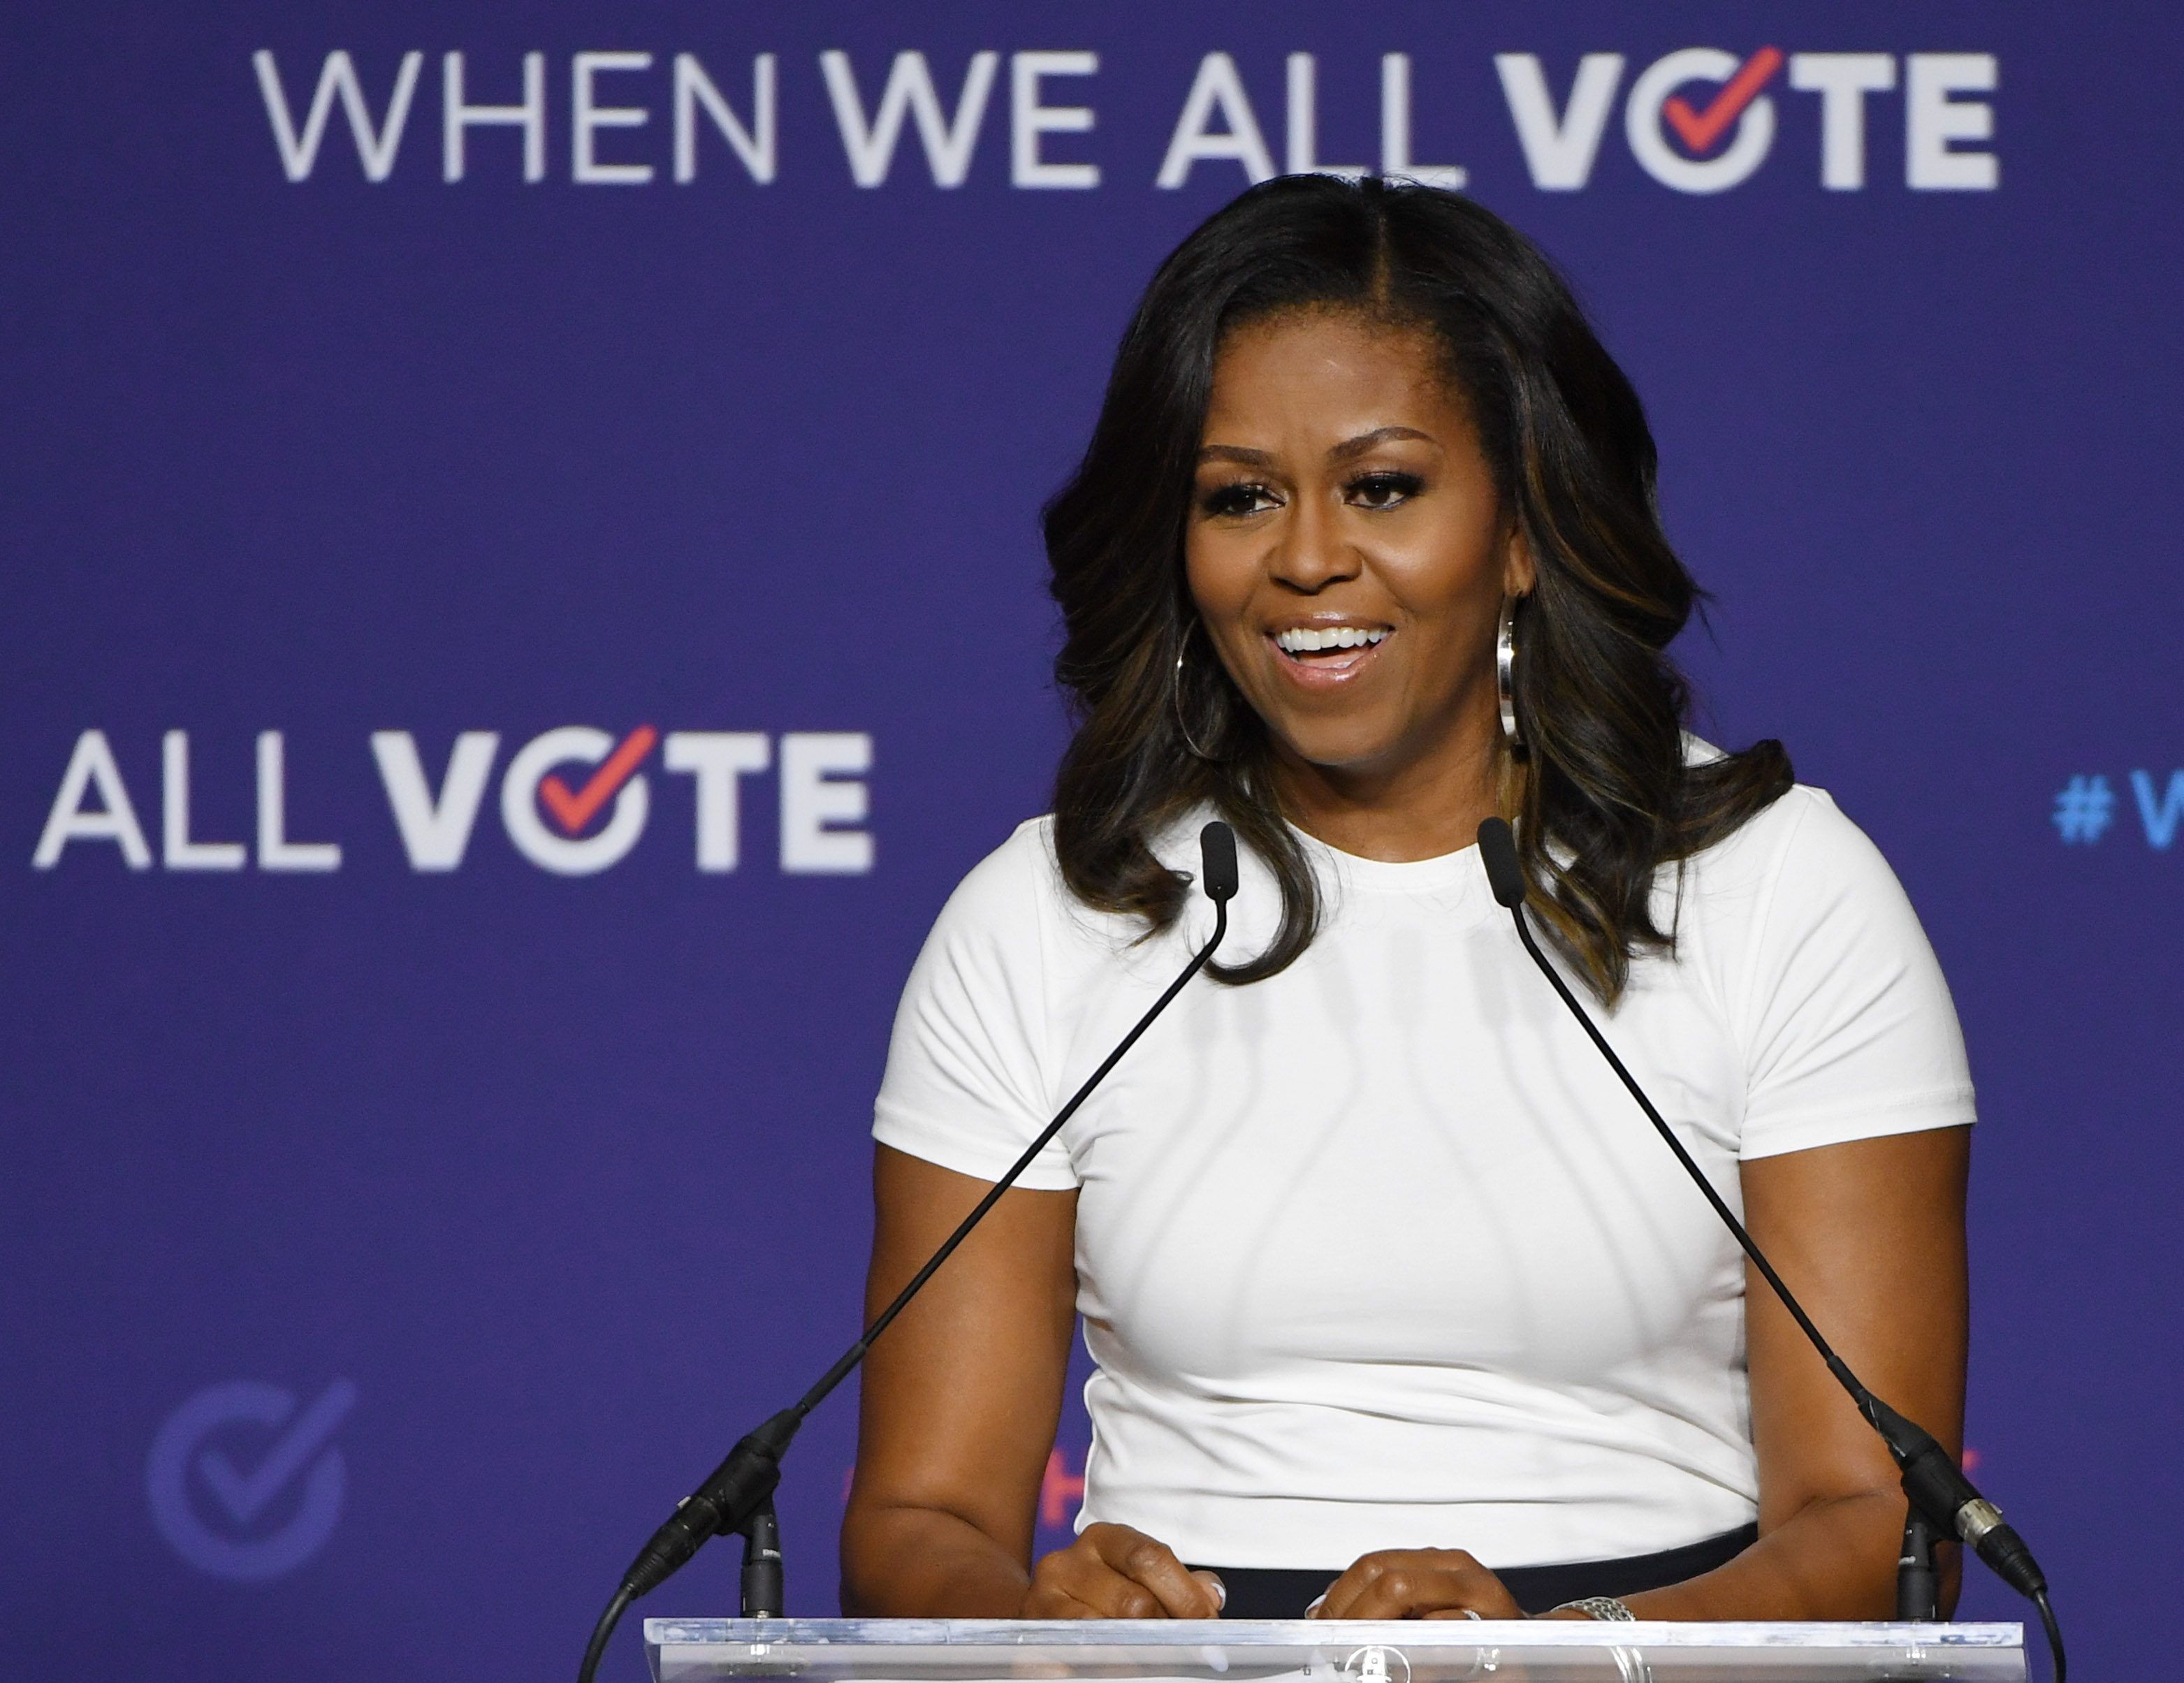 Former first lady Michelle Obama speaks during a rally for When We All Vote's National Week of Action at Chaparral High School on September 23, 2018 in Las Vegas, Nevada.